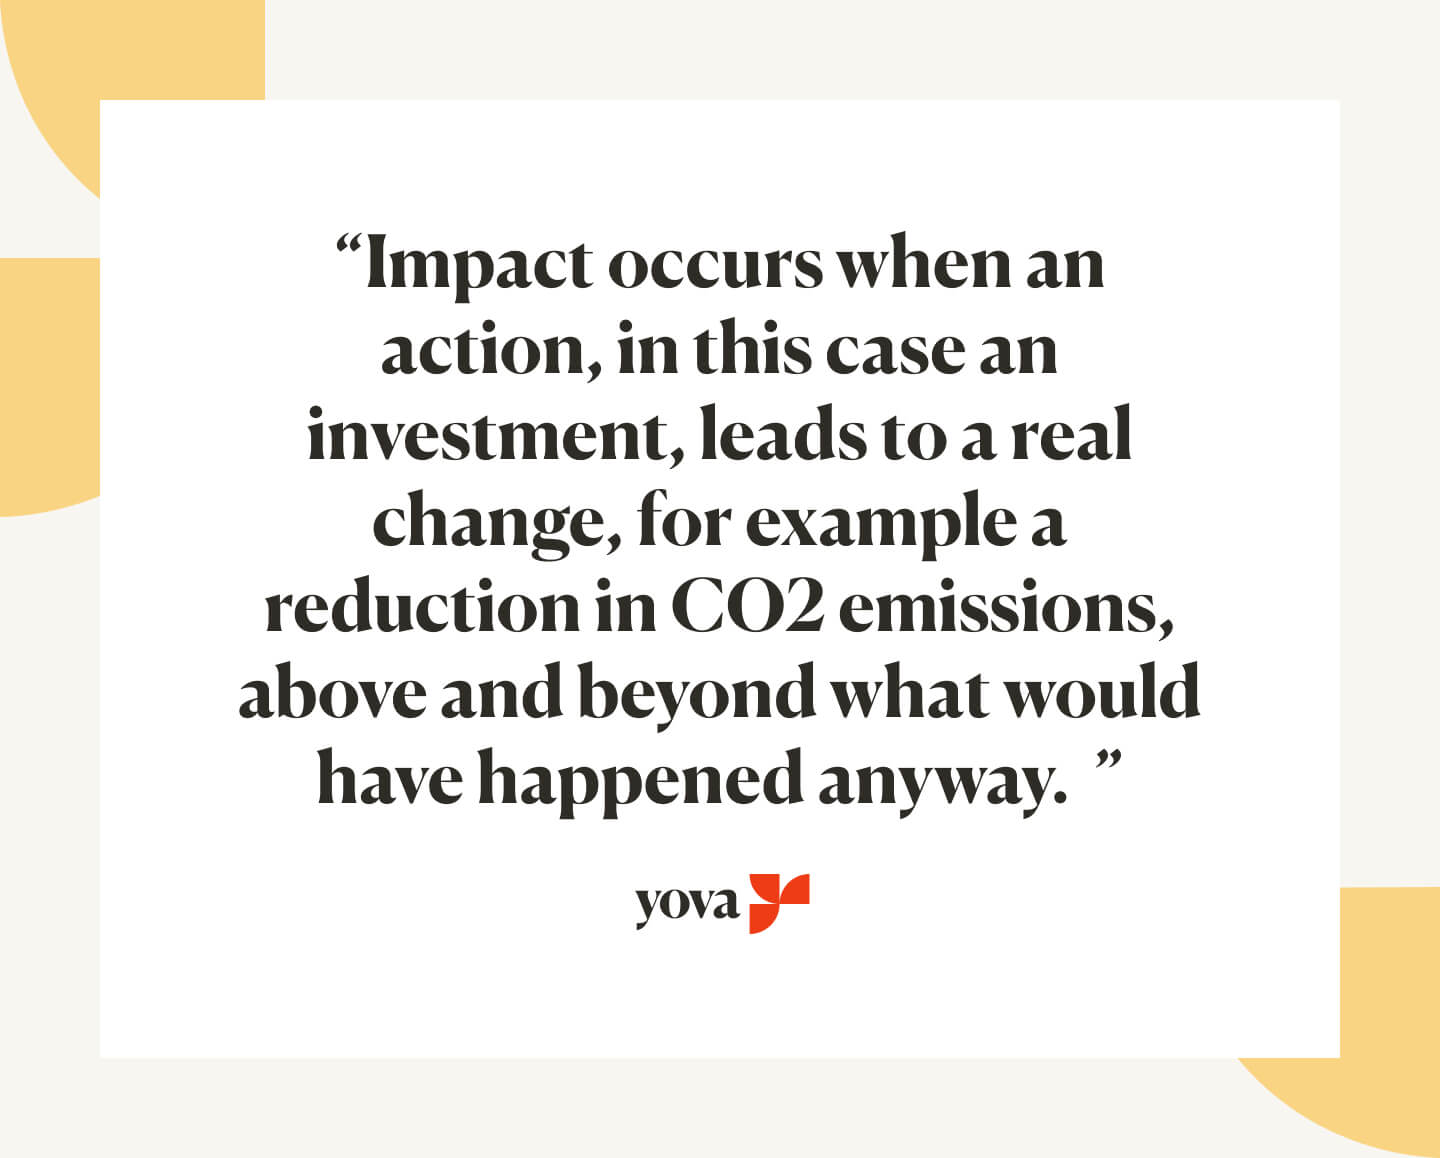 When does an investment have an impact?